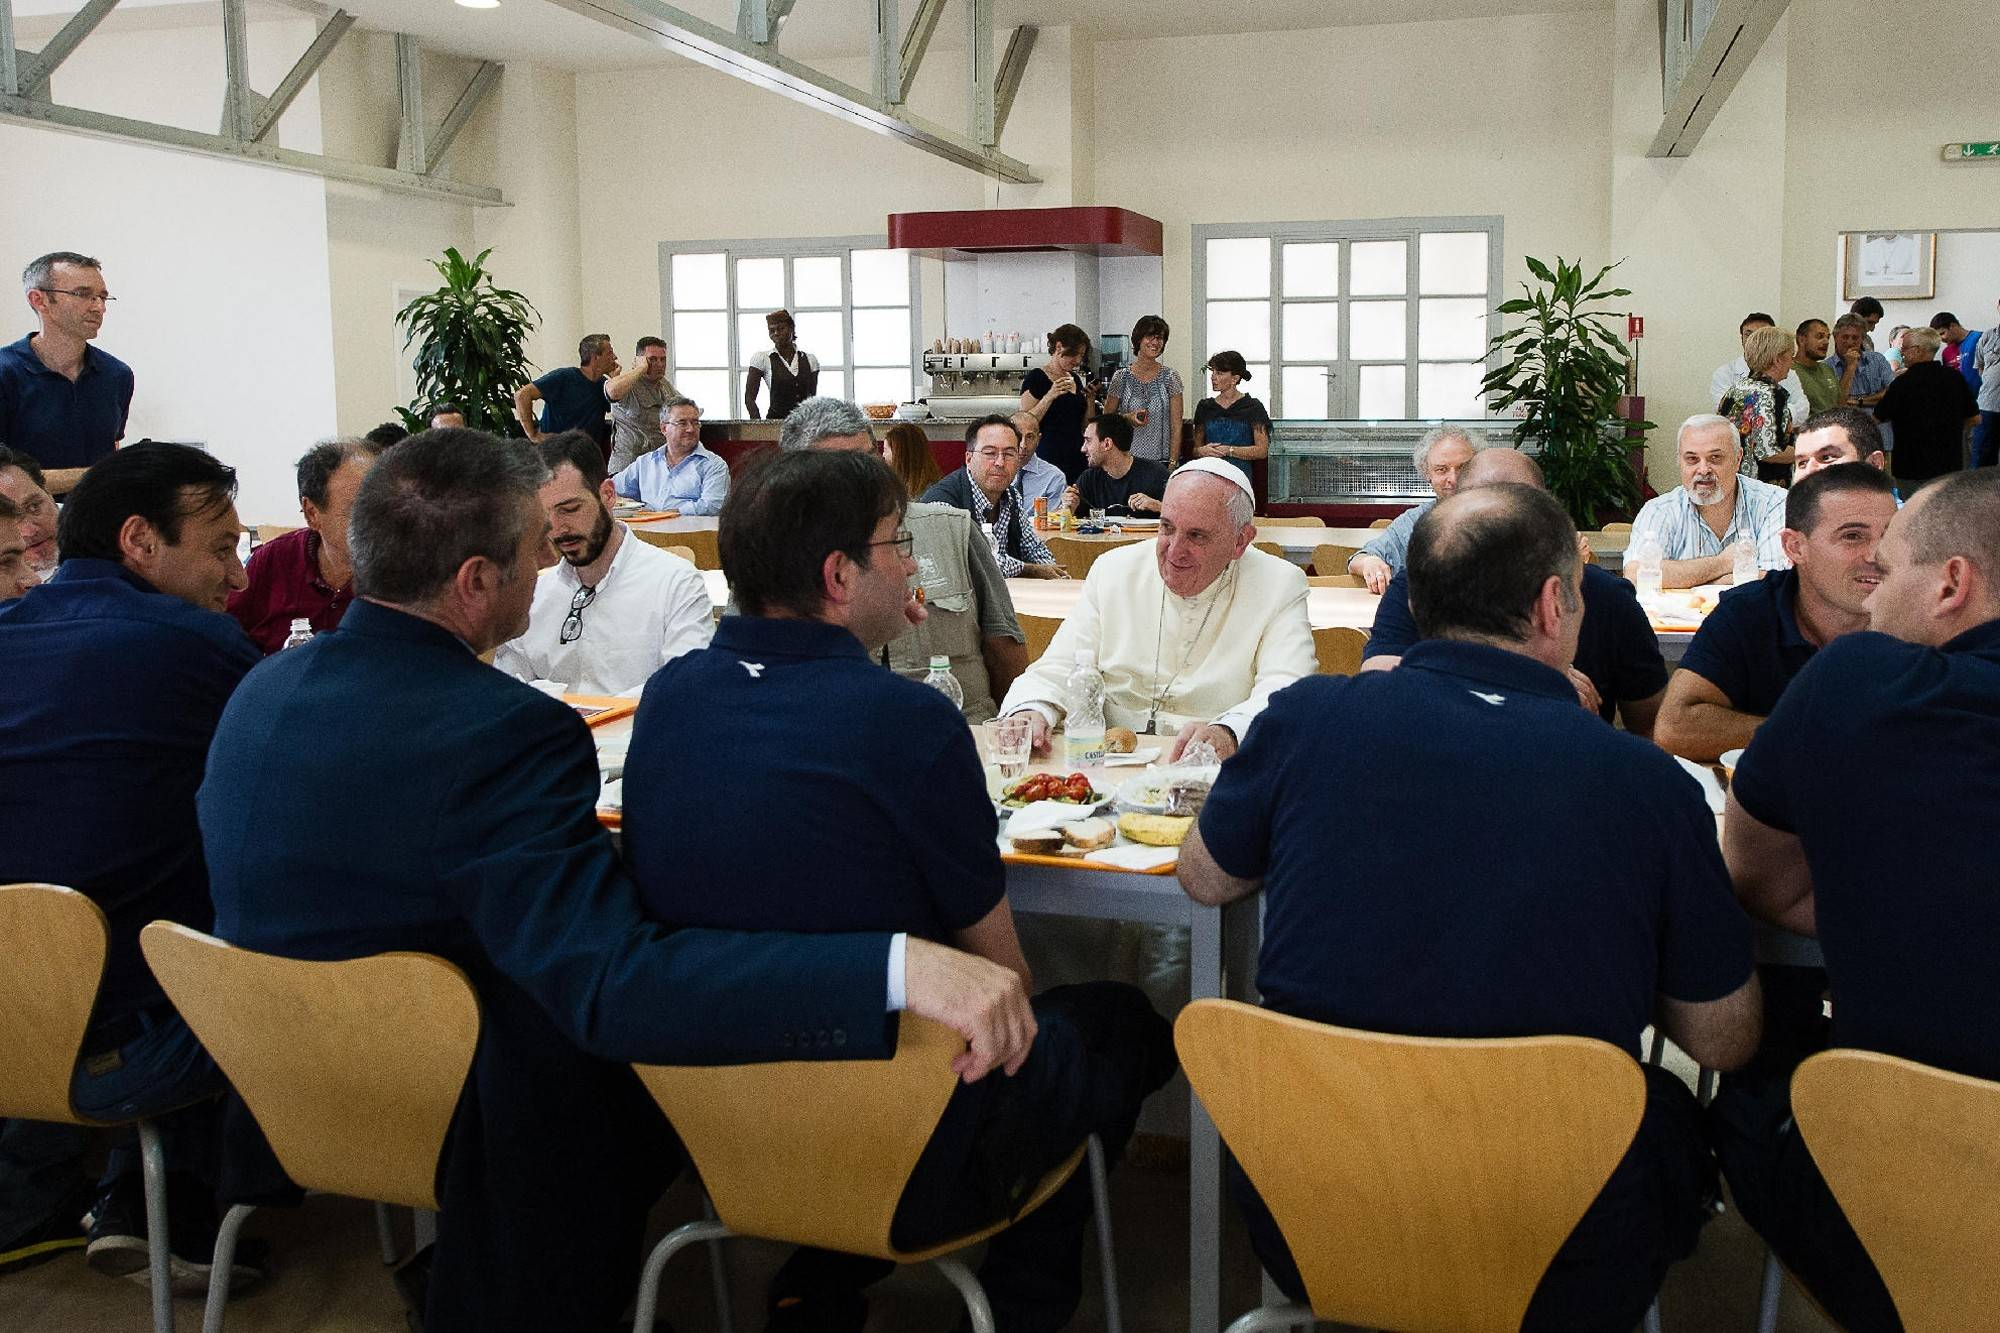 Associated PressPope Francis popped in unannounced at the Vatican workers' cafeteria Friday and lined up, tray in hand, along with stunned diners.